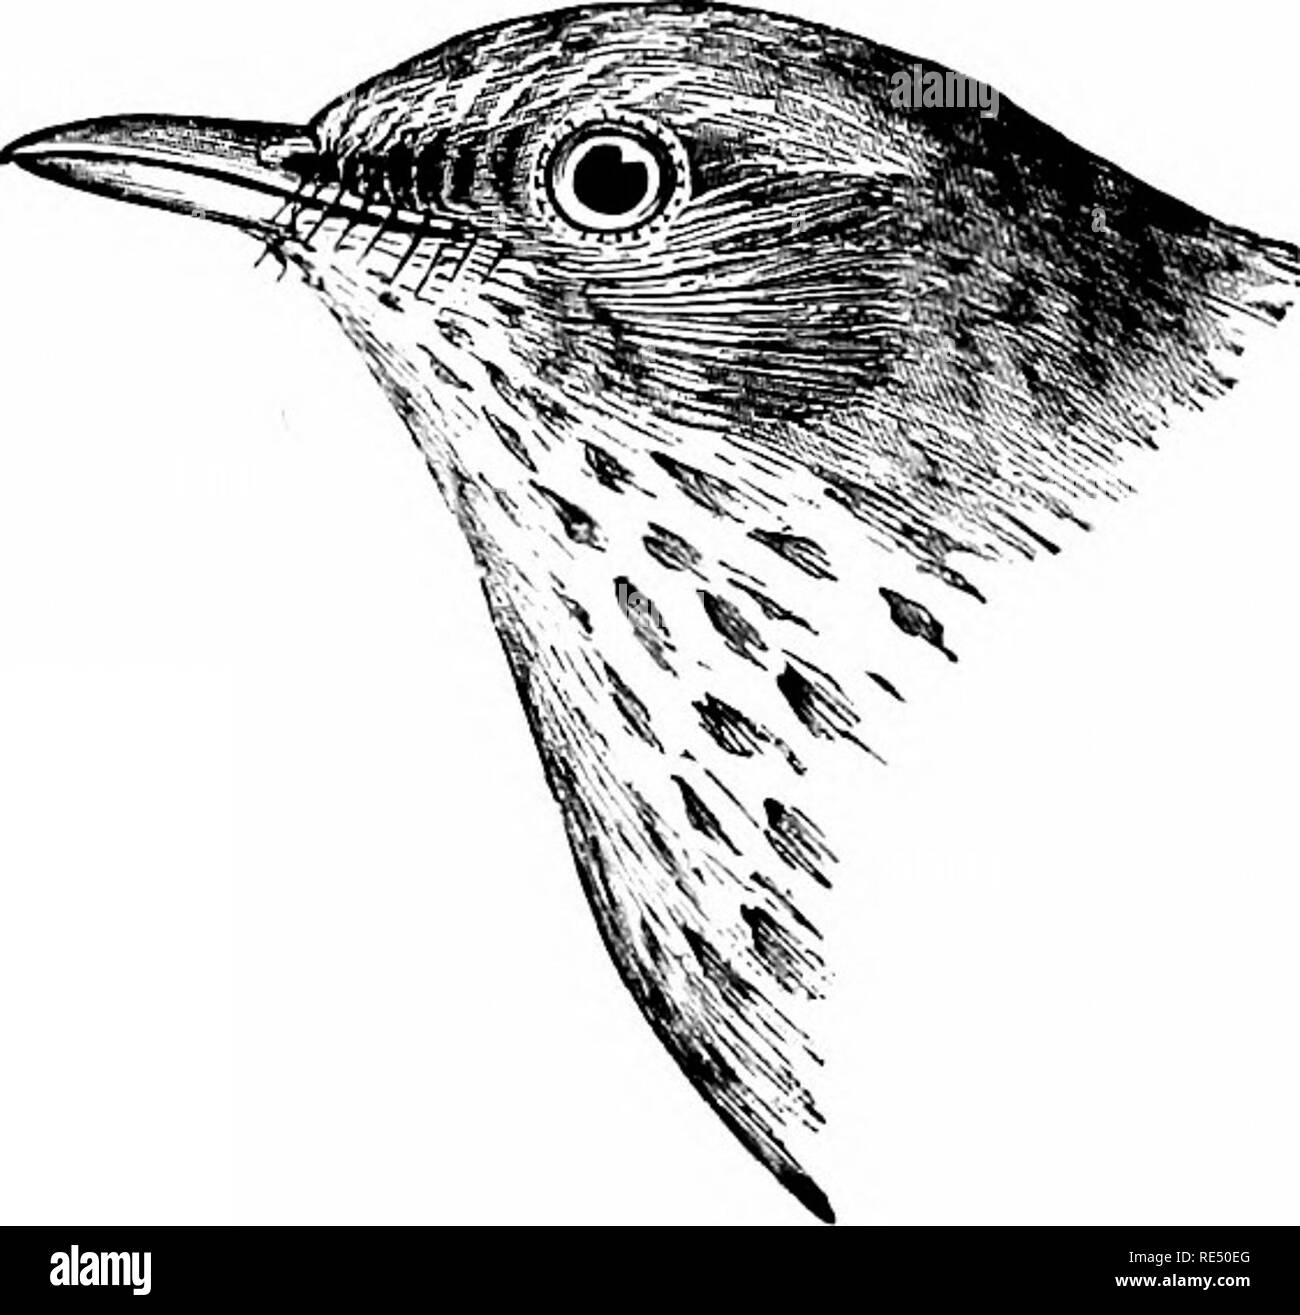 . The birds of eastern North America known to occur east of the nineteenth meridian ... Birds. 322 KEY TO THE BIRDS OF EASTERN NORTH AMERICA.. Upper plumage, brownish olive; ends of upper tail coverts and tail, rufous brown, much more rufous than the back; no white on tail; first primary, very small and narrow. Hermit Thrush. Turdus aonalaschkcE pallasii. See No. 5G5.. Please note that these images are extracted from scanned page images that may have been digitally enhanced for readability - coloration and appearance of these illustrations may not perfectly resemble the original work.. Cory, C Stock Photo